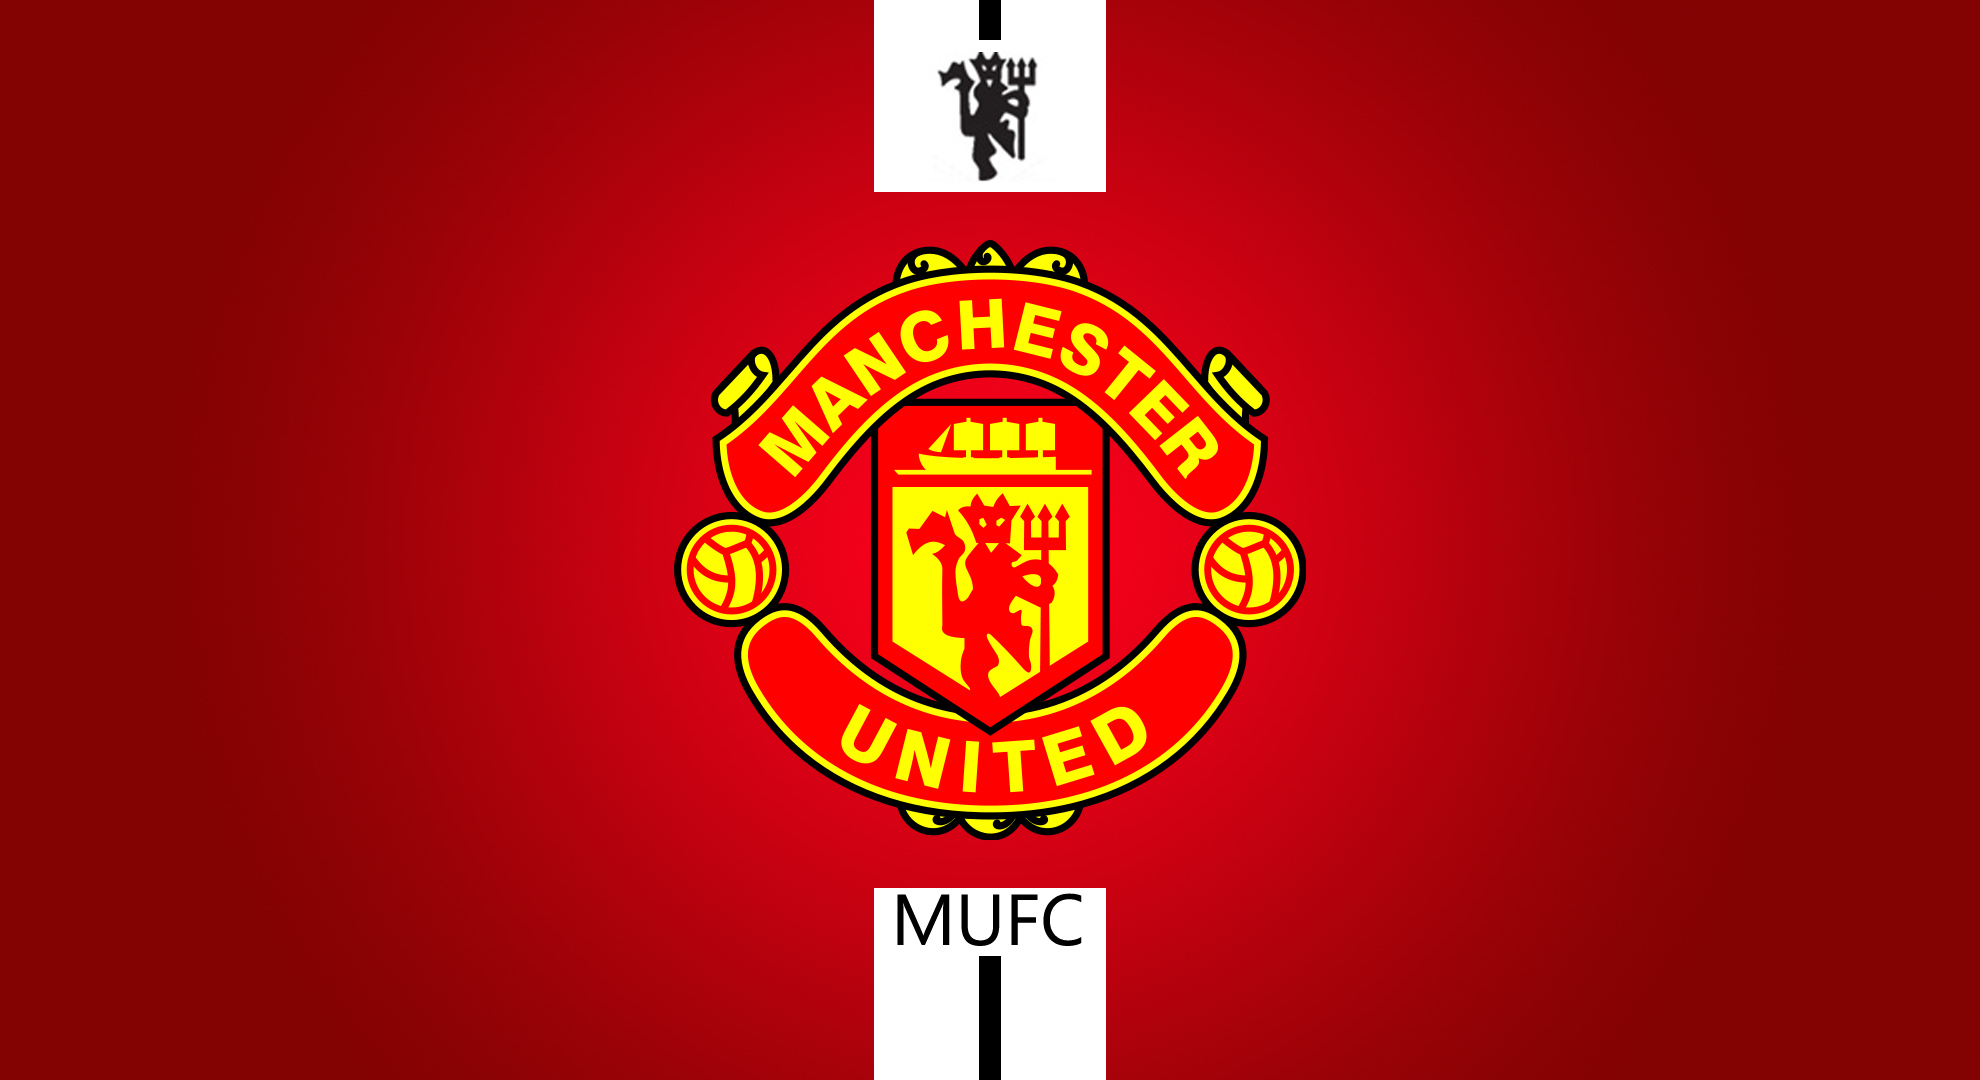 Manchester United Logo Wallpapers 1980x1080